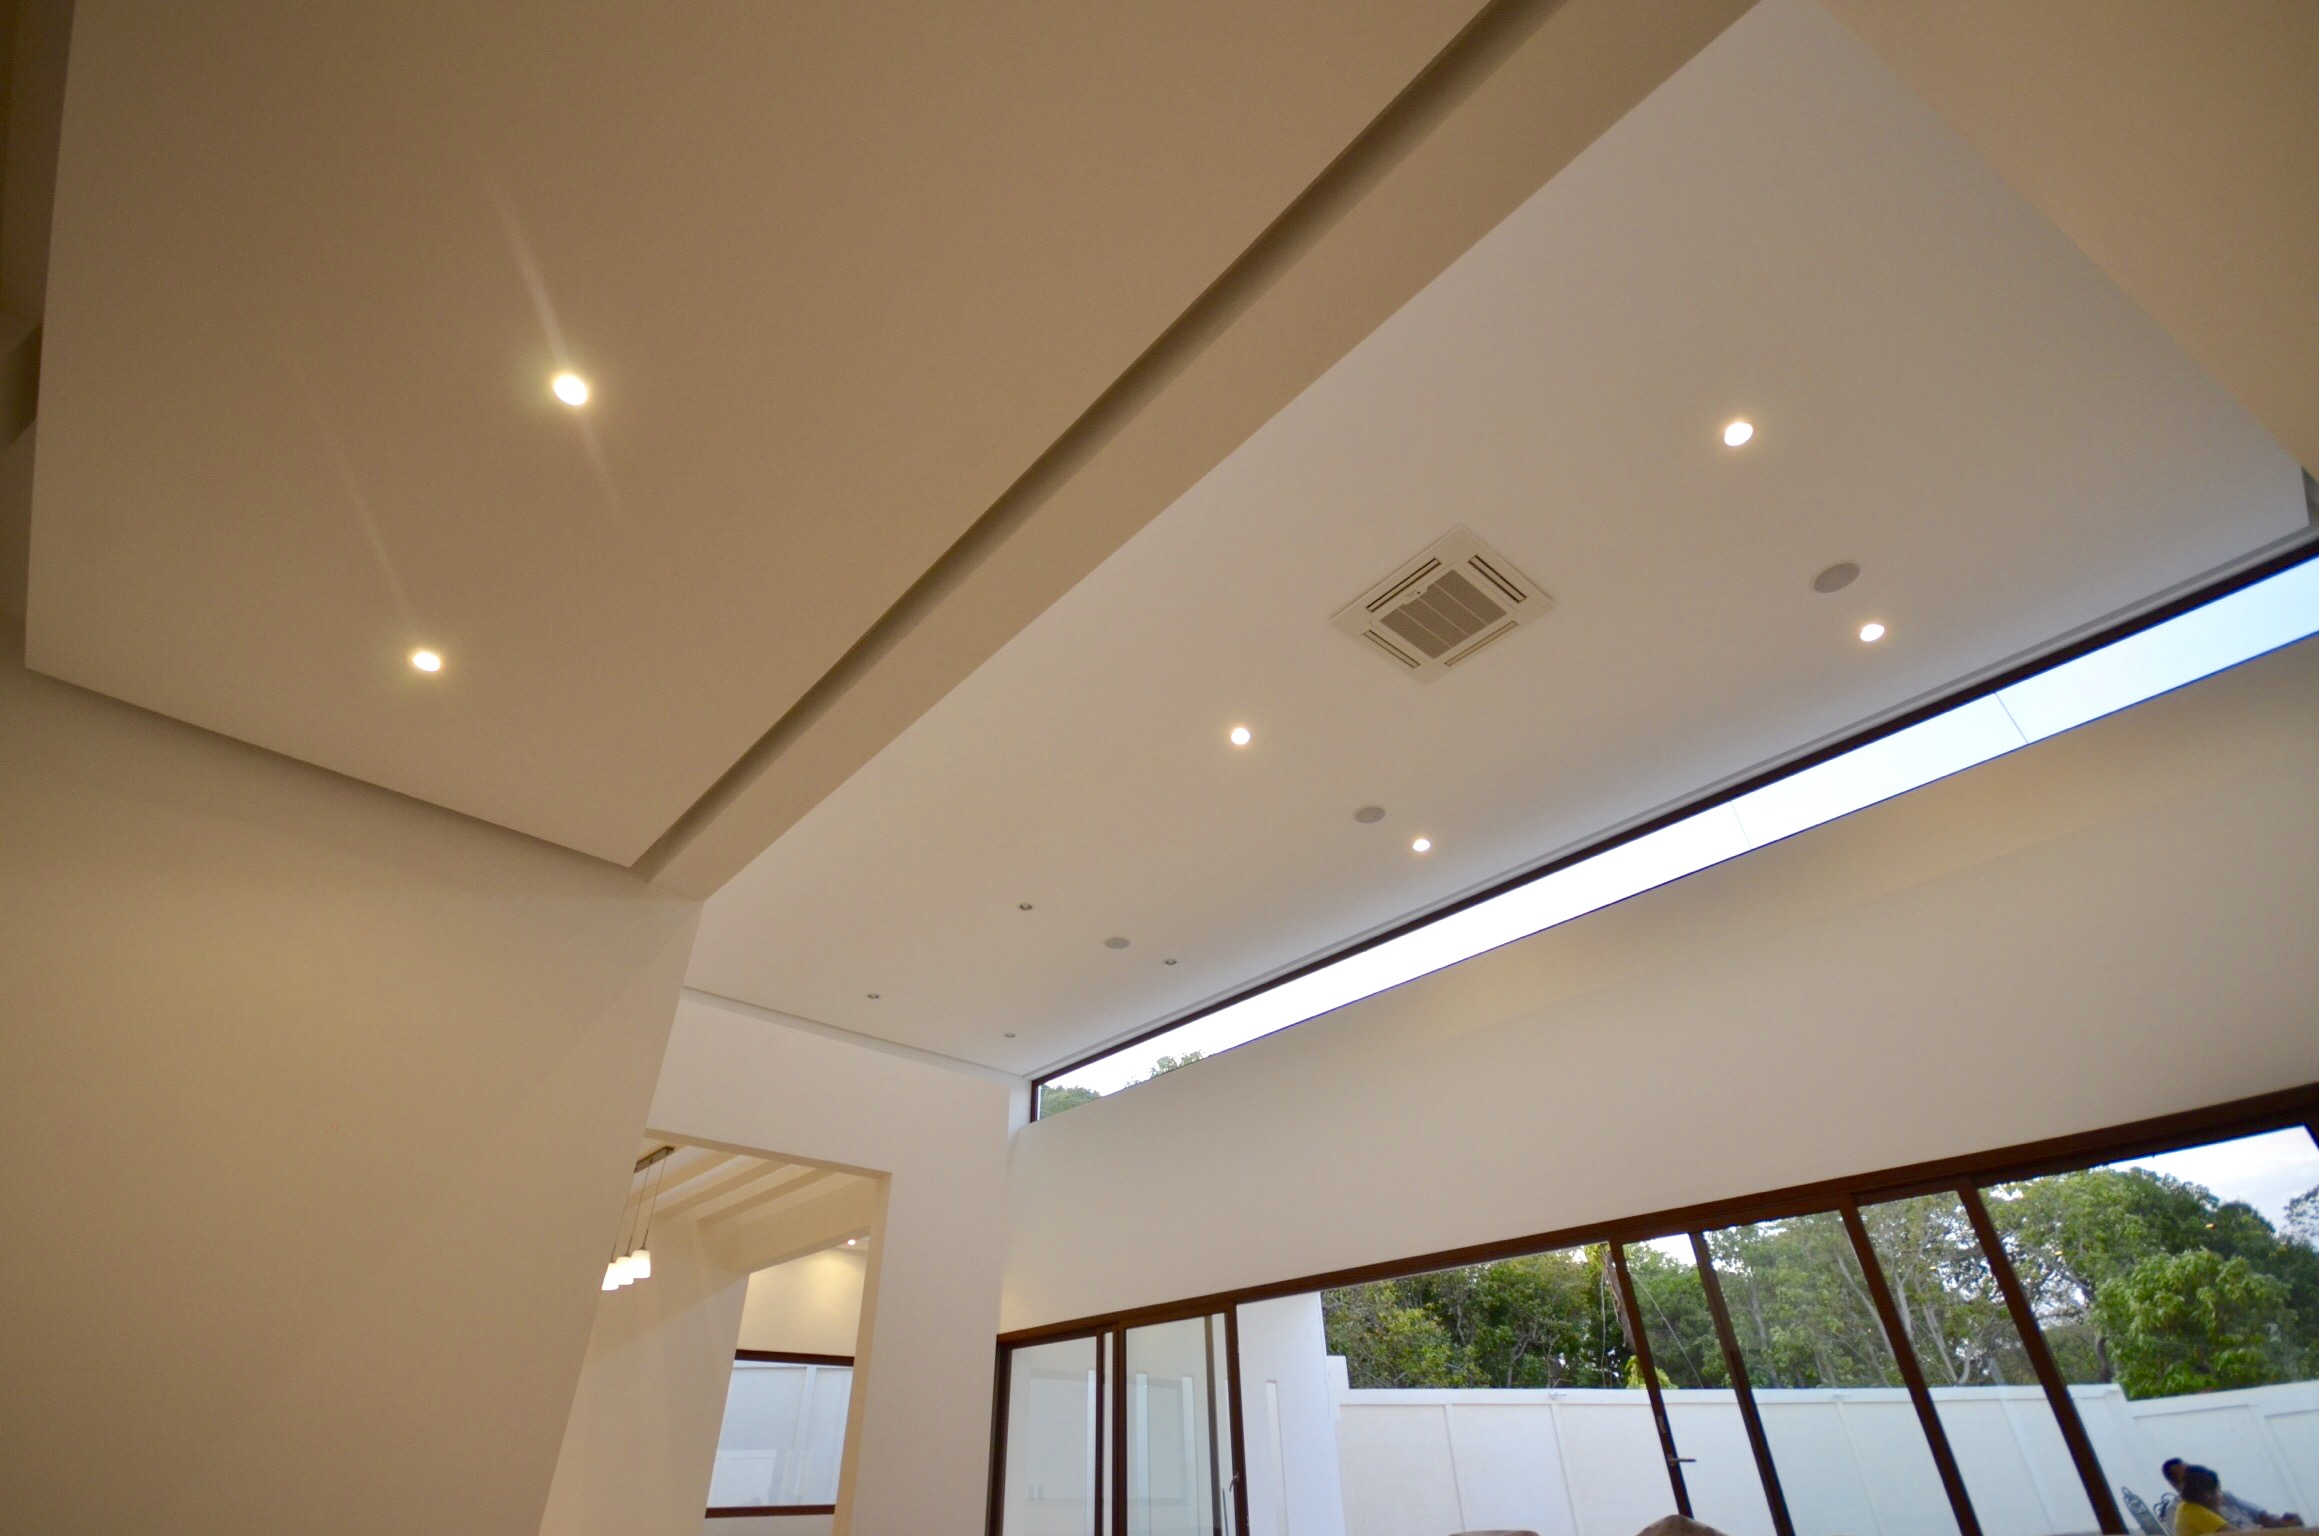 Roof decor, architect design, Enstancia Residence